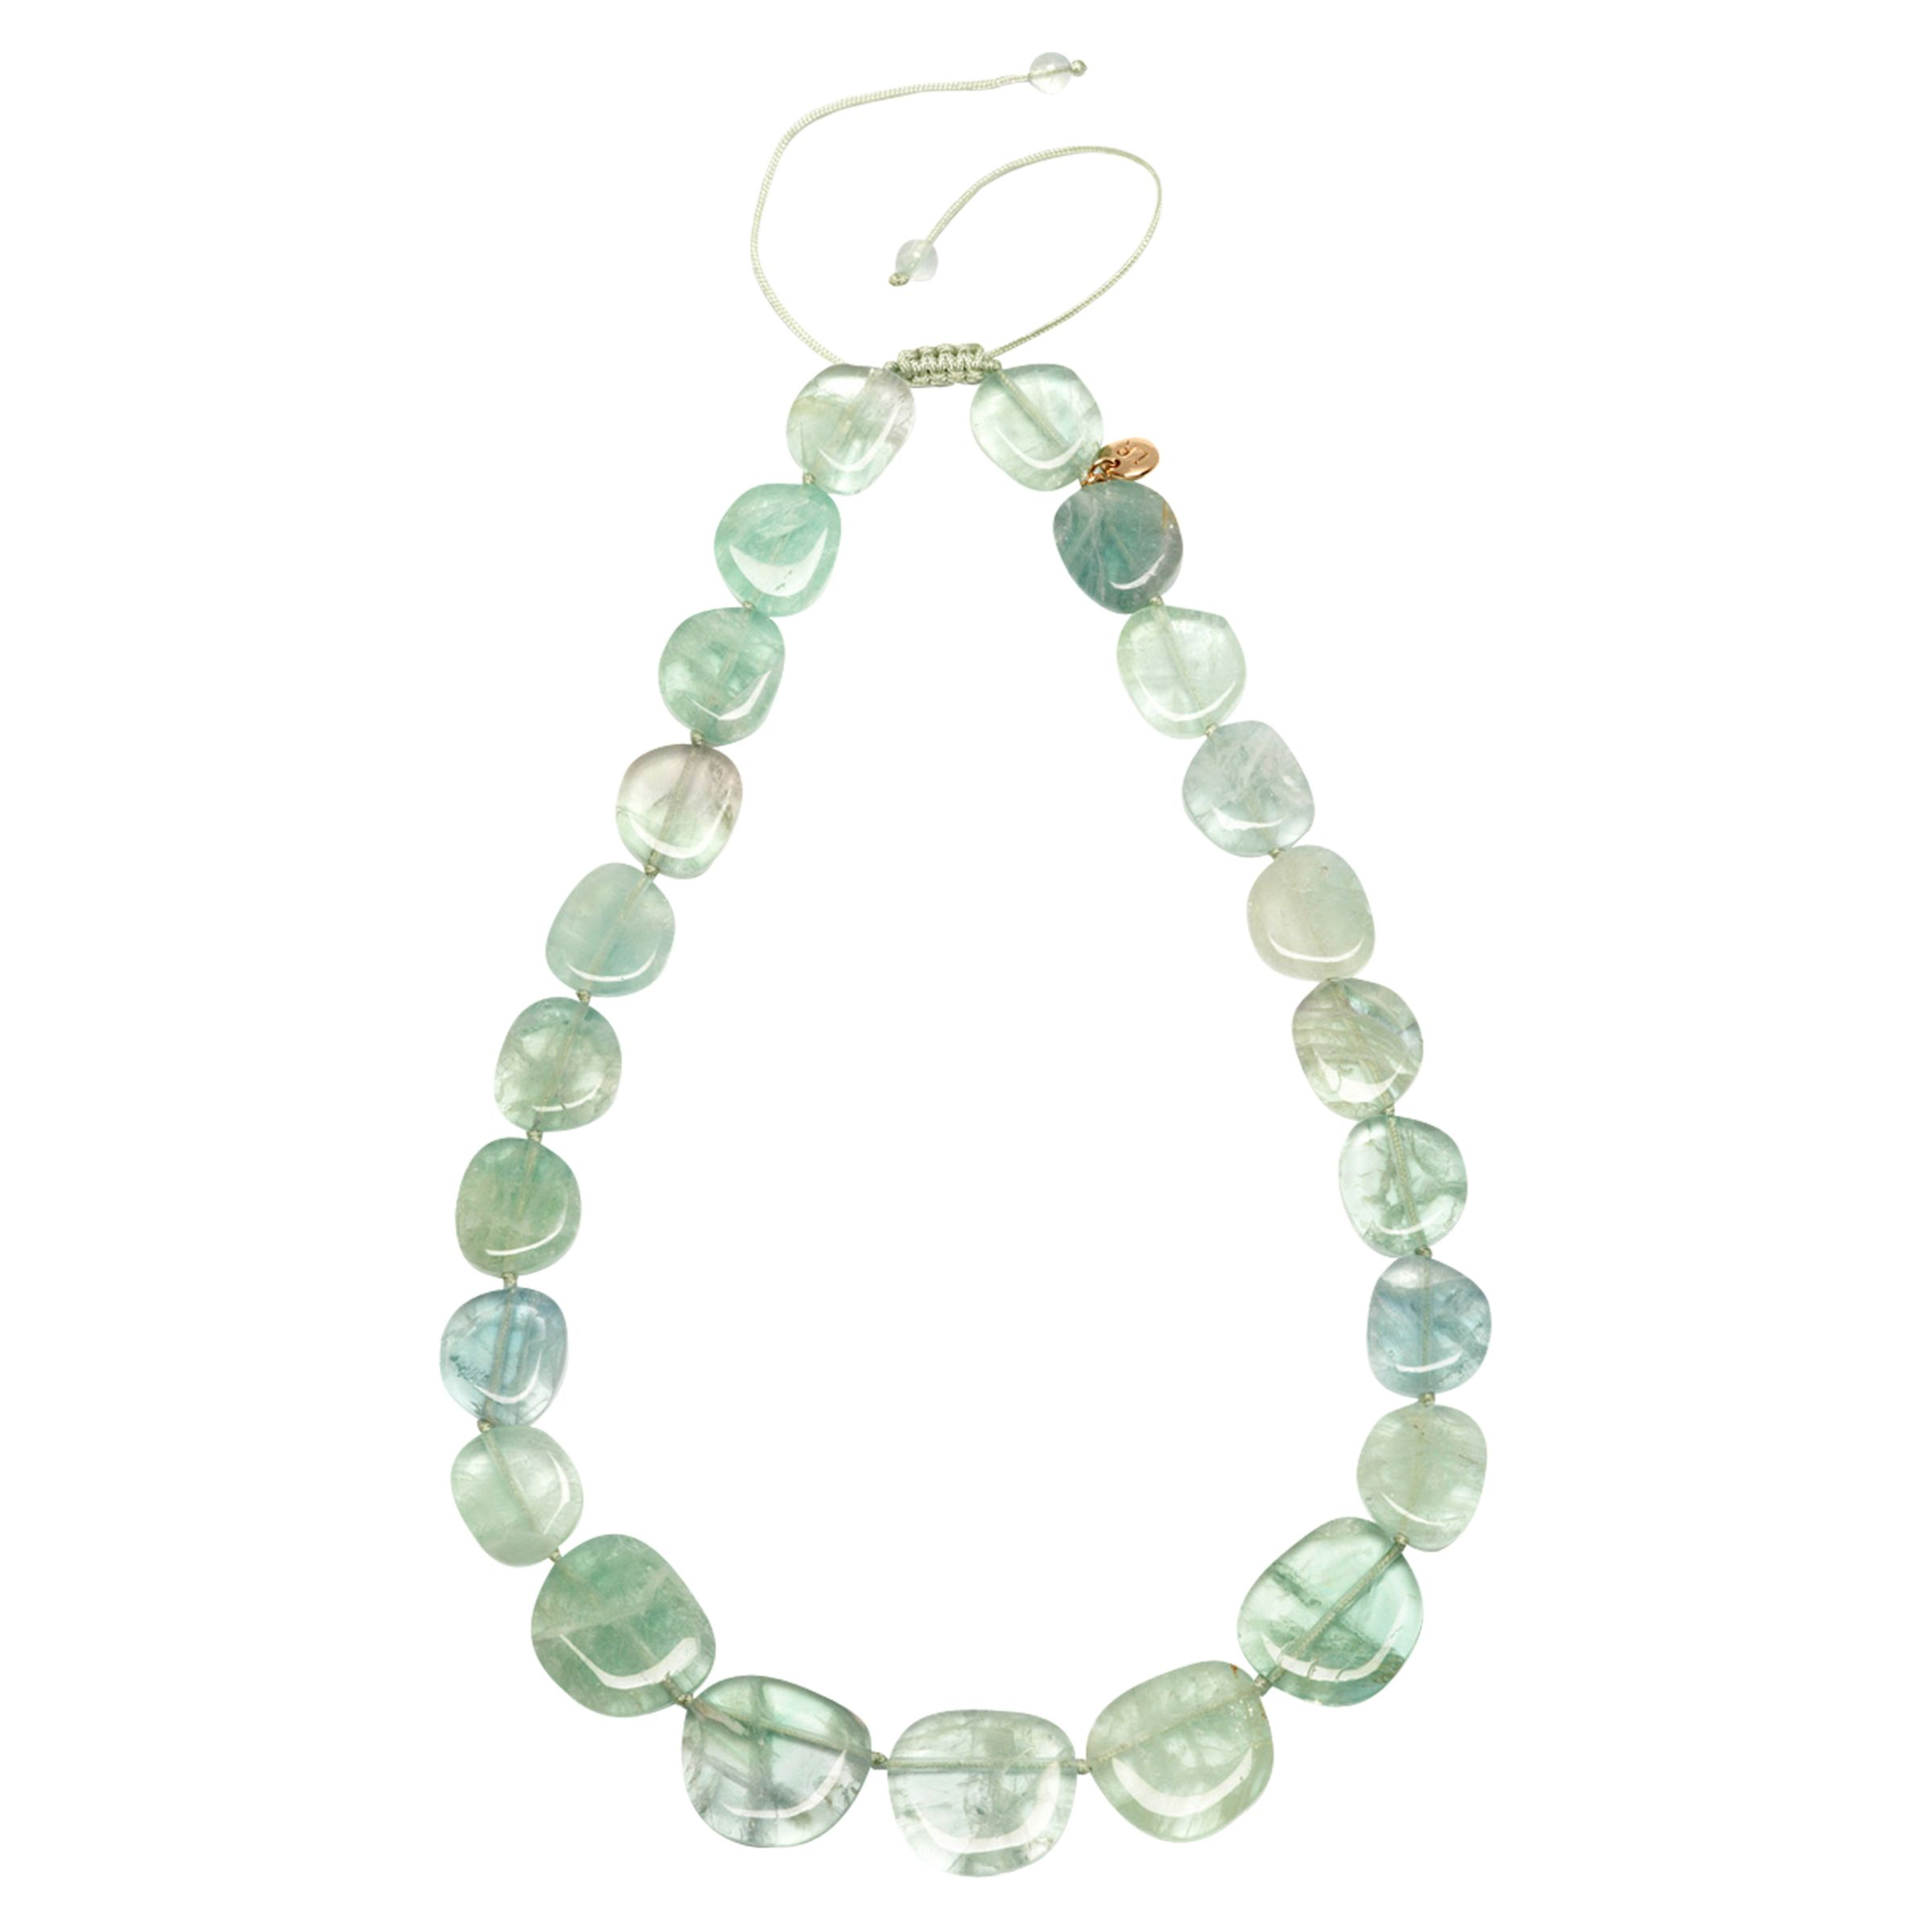 Lola Rose Lola Rose Quentin Necklace, Light Green Fluorite